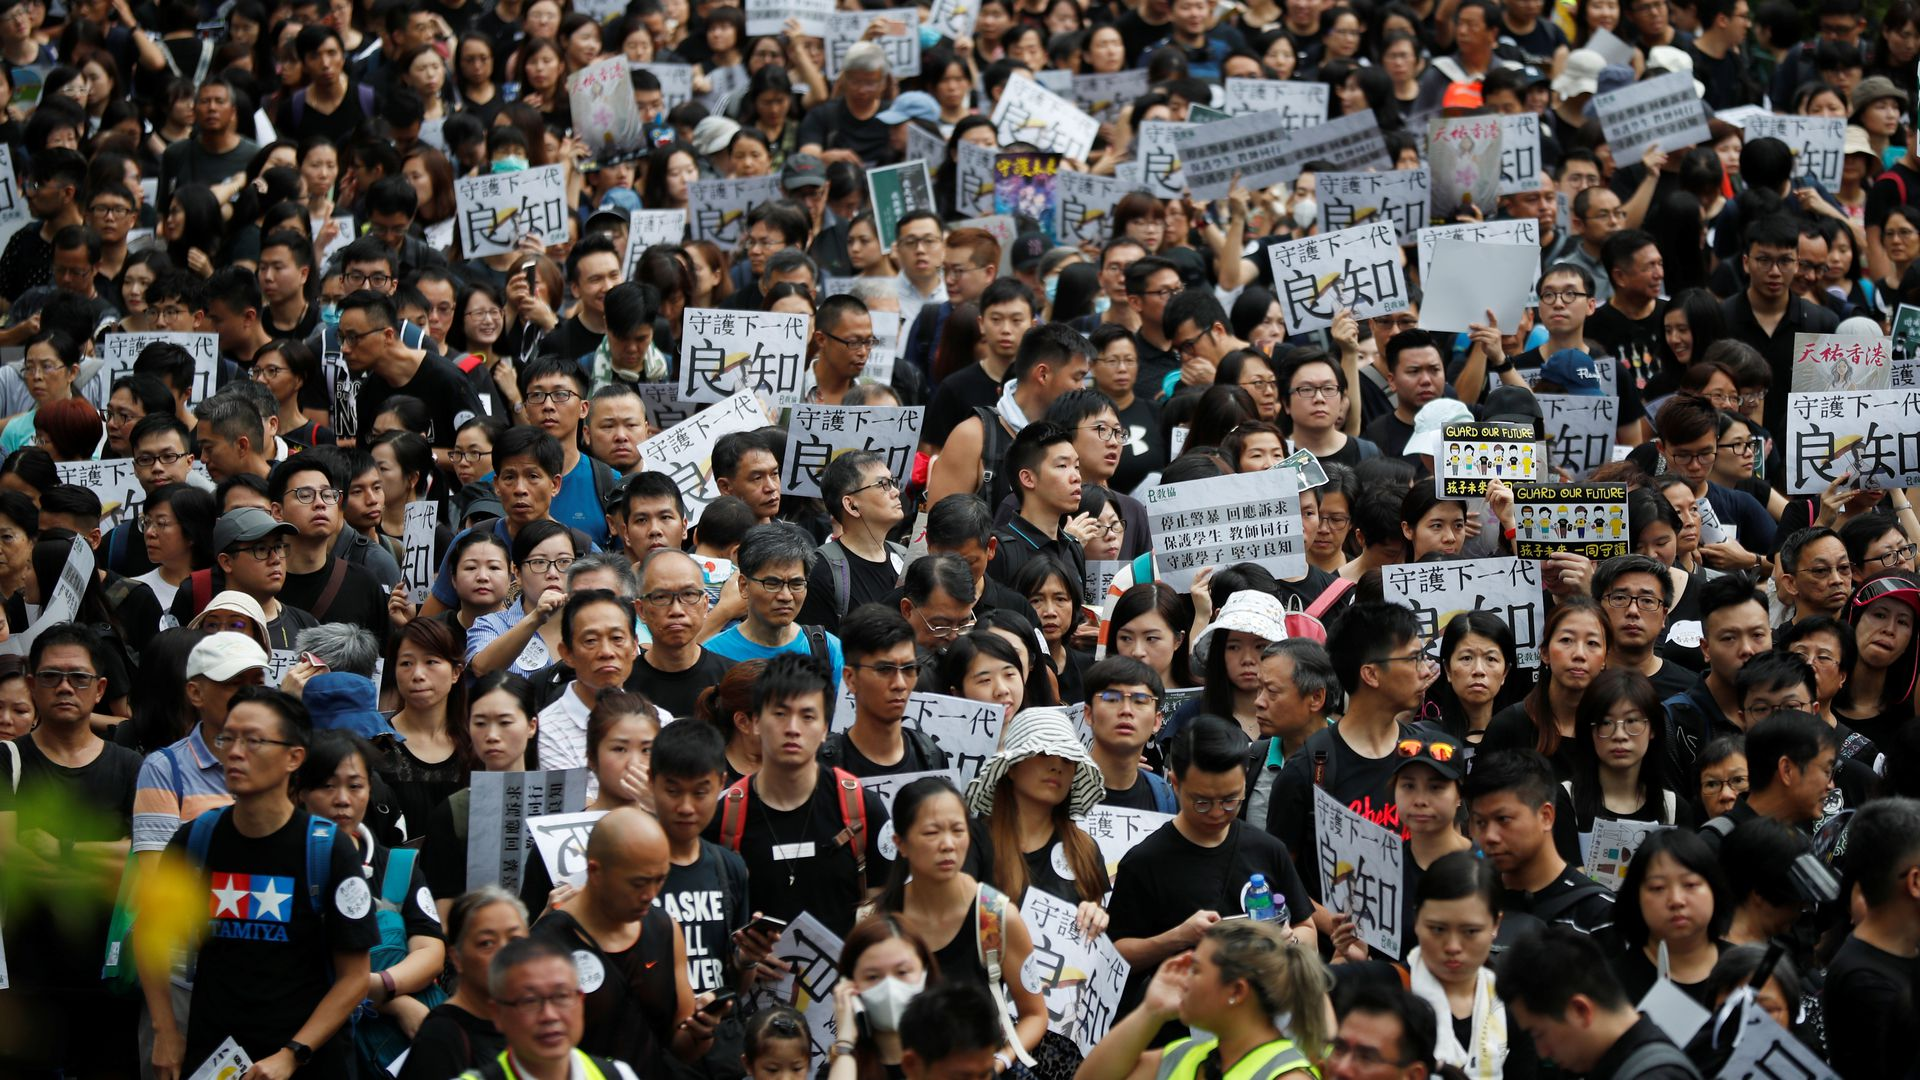 Thousands of teachers join rally as Hong Kong protests enter 11th weekend